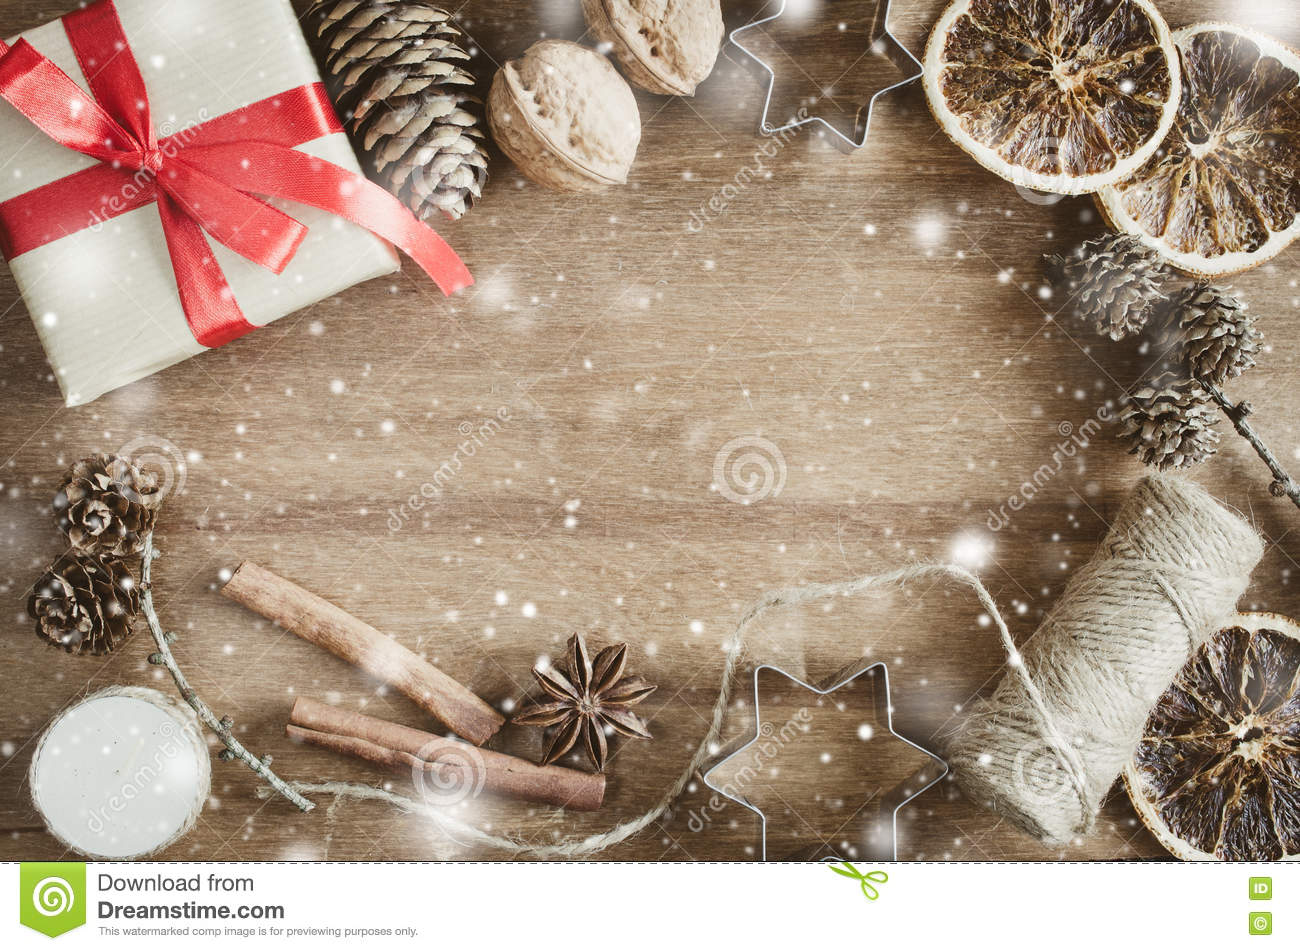 Royalty Free Stock Photo Download Christmas Holiday Background Rustic Xmas Decorations